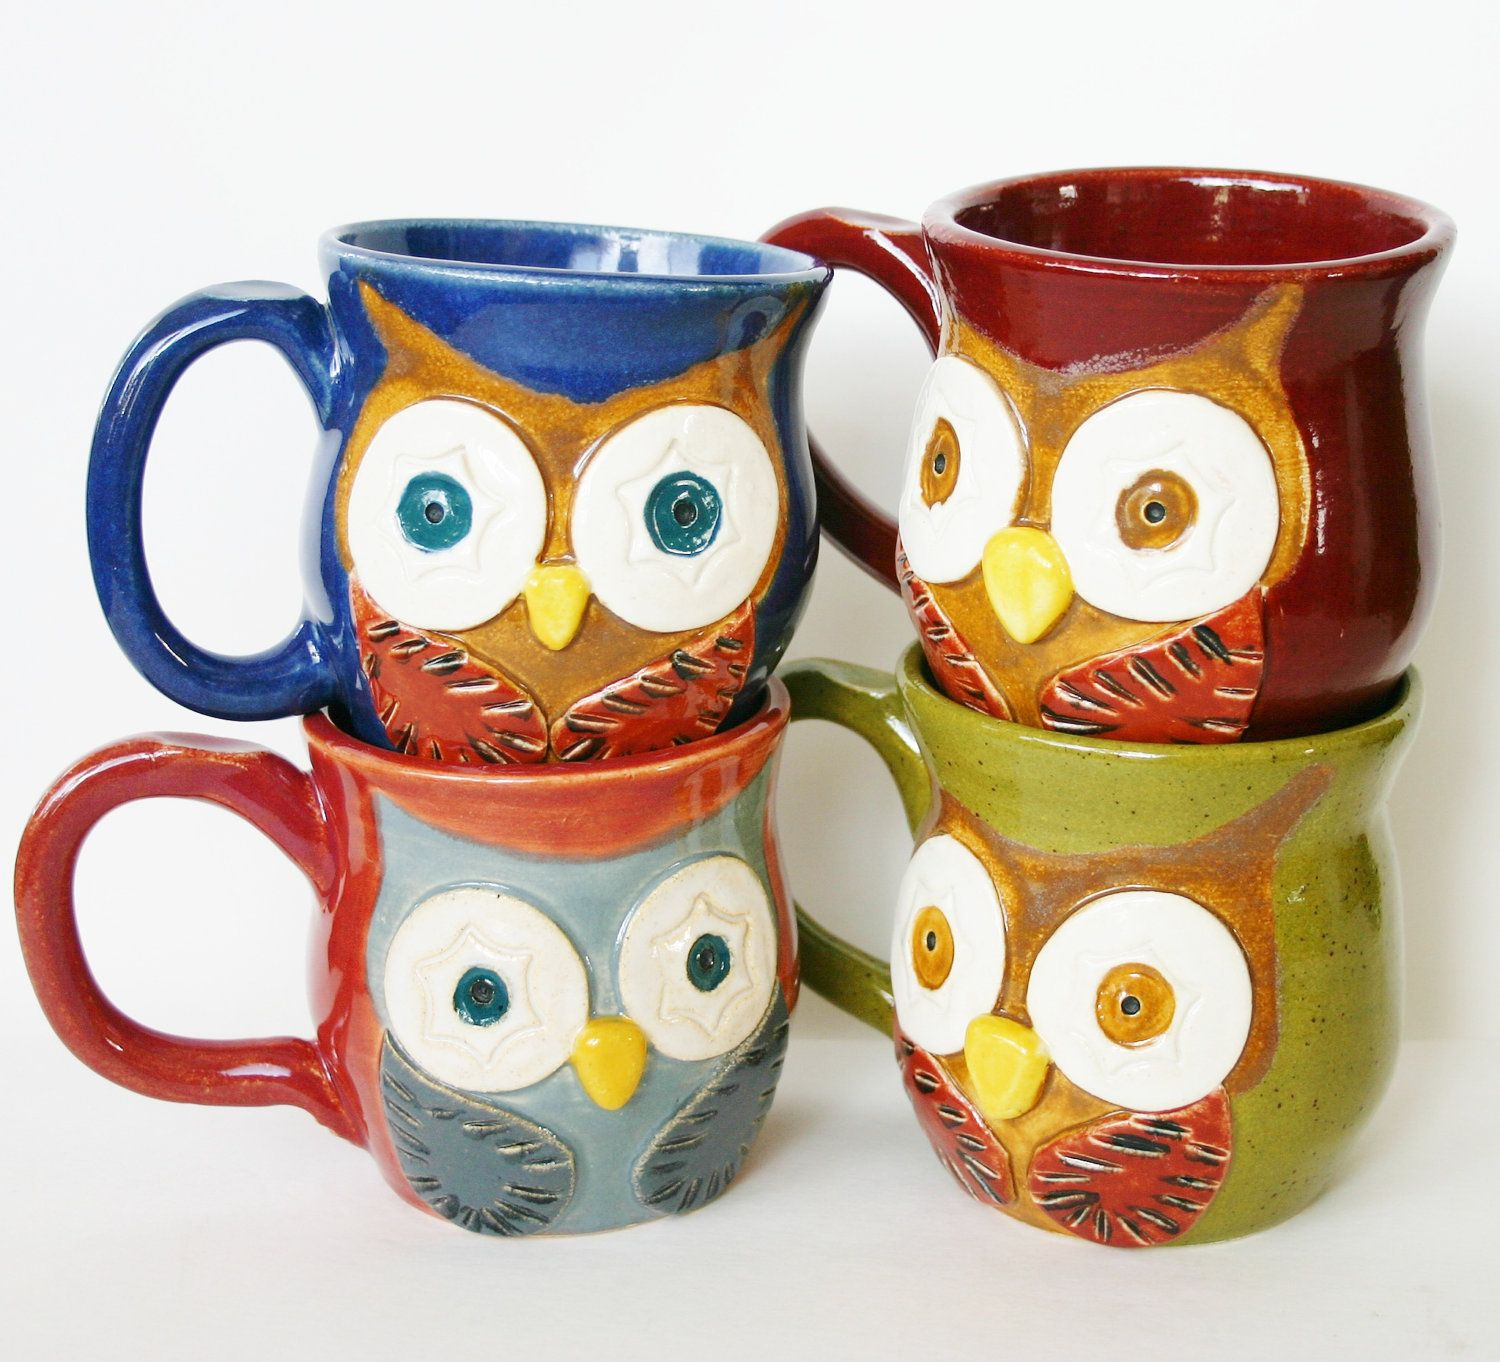 Owl Ceramic Mug Mr Owl Ceramic Mug Mug Collection Pinterest Owl